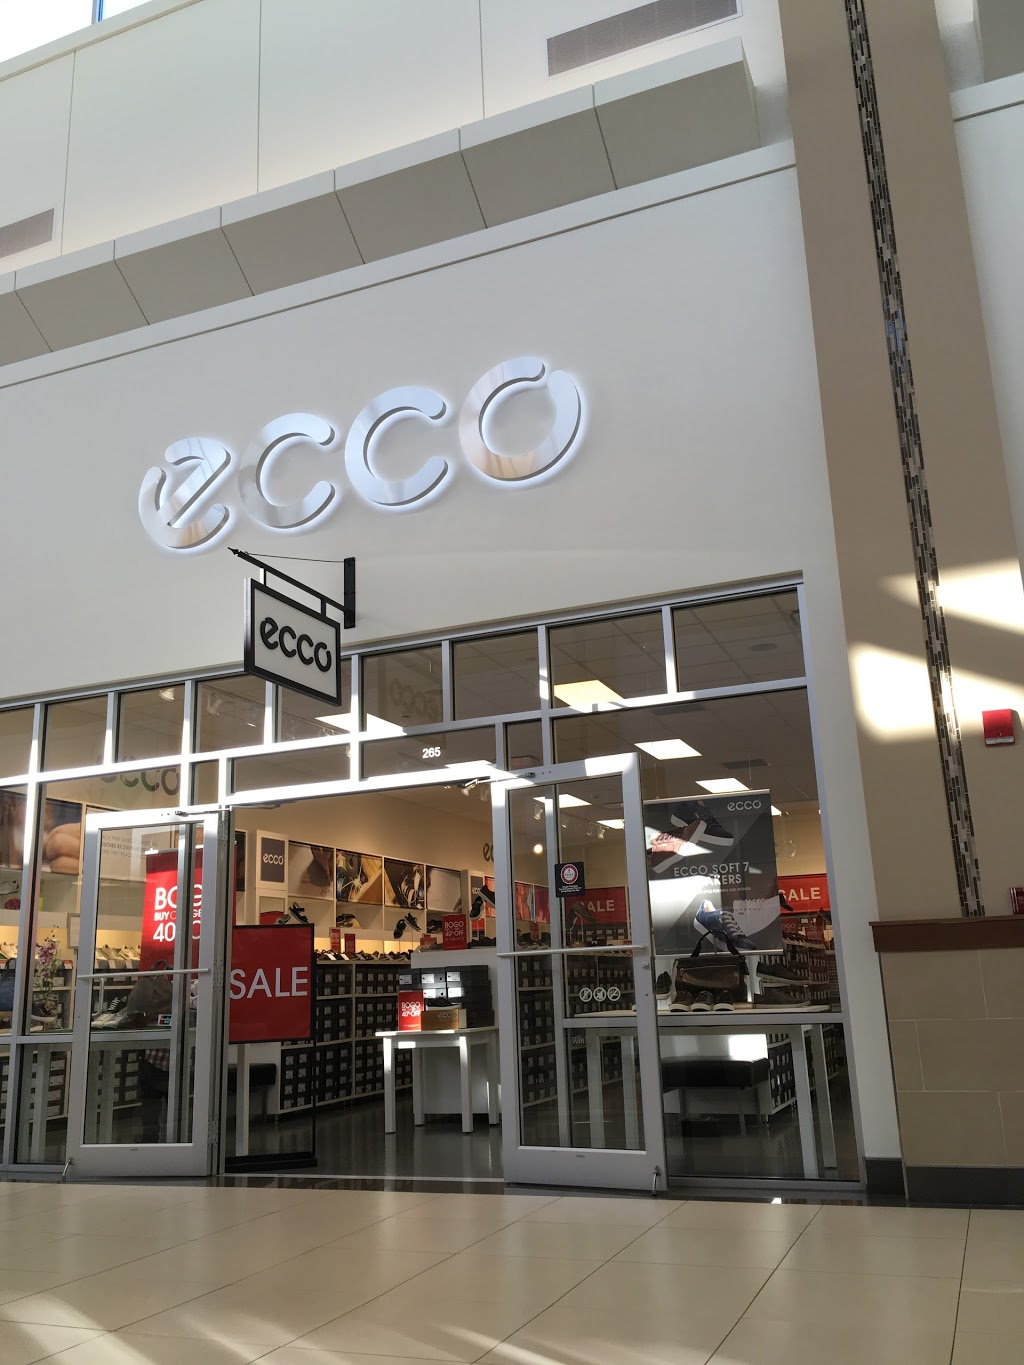 ECCO Outlet - shoe store  | Photo 4 of 7 | Address: 455 Trolley Line Blvd #265, Mashantucket, CT 06338, USA | Phone: (860) 213-5286